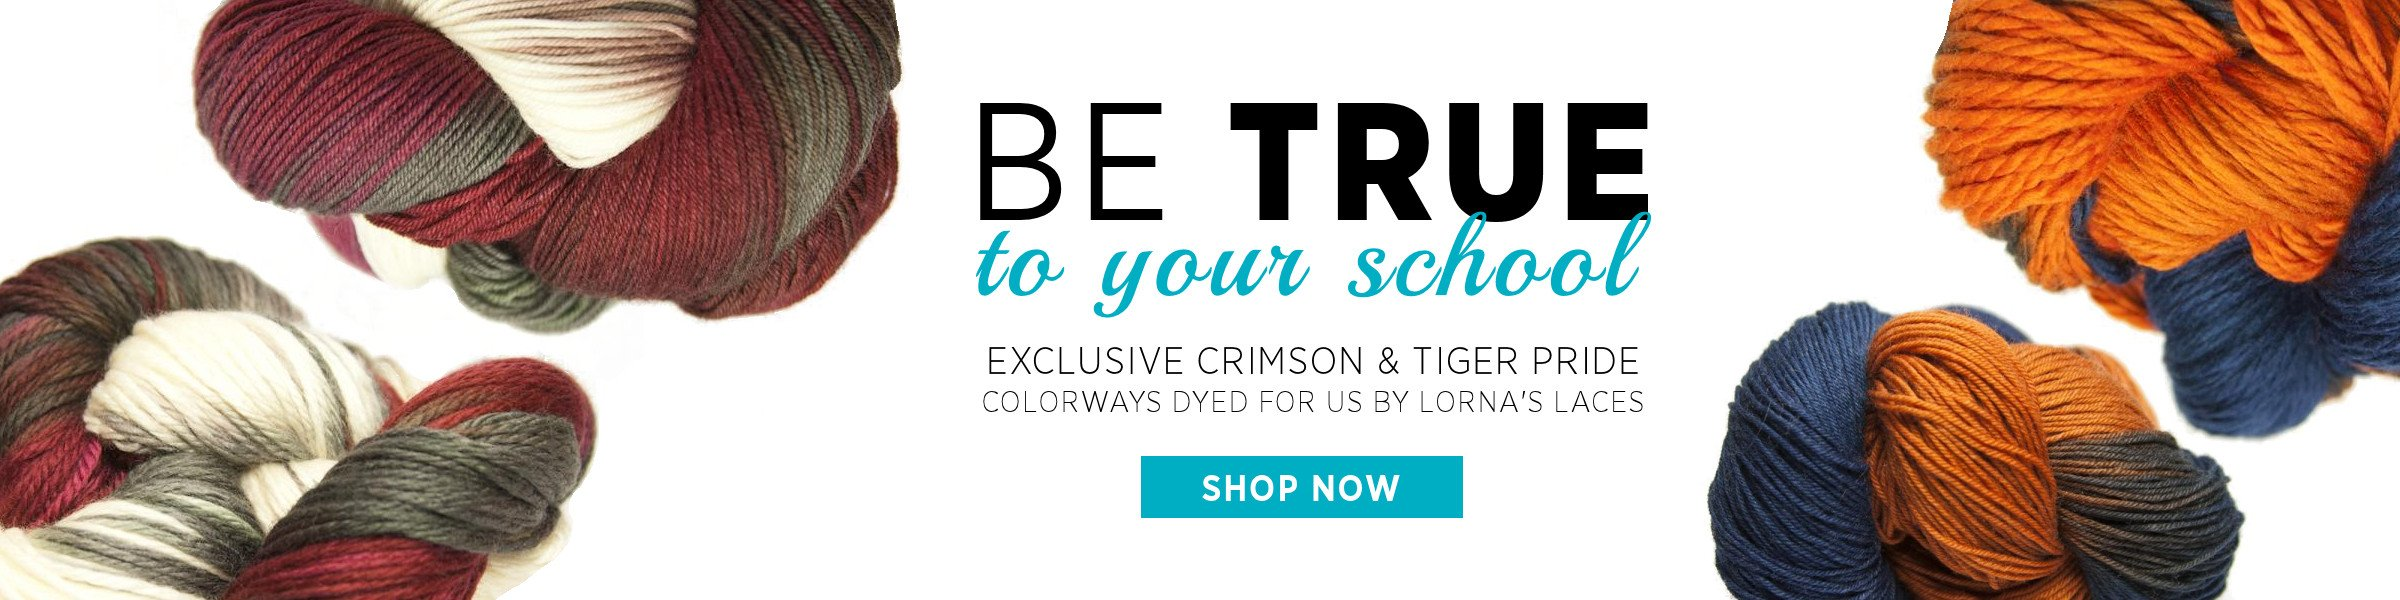 Be true to your school! Exclusive yarn colorways